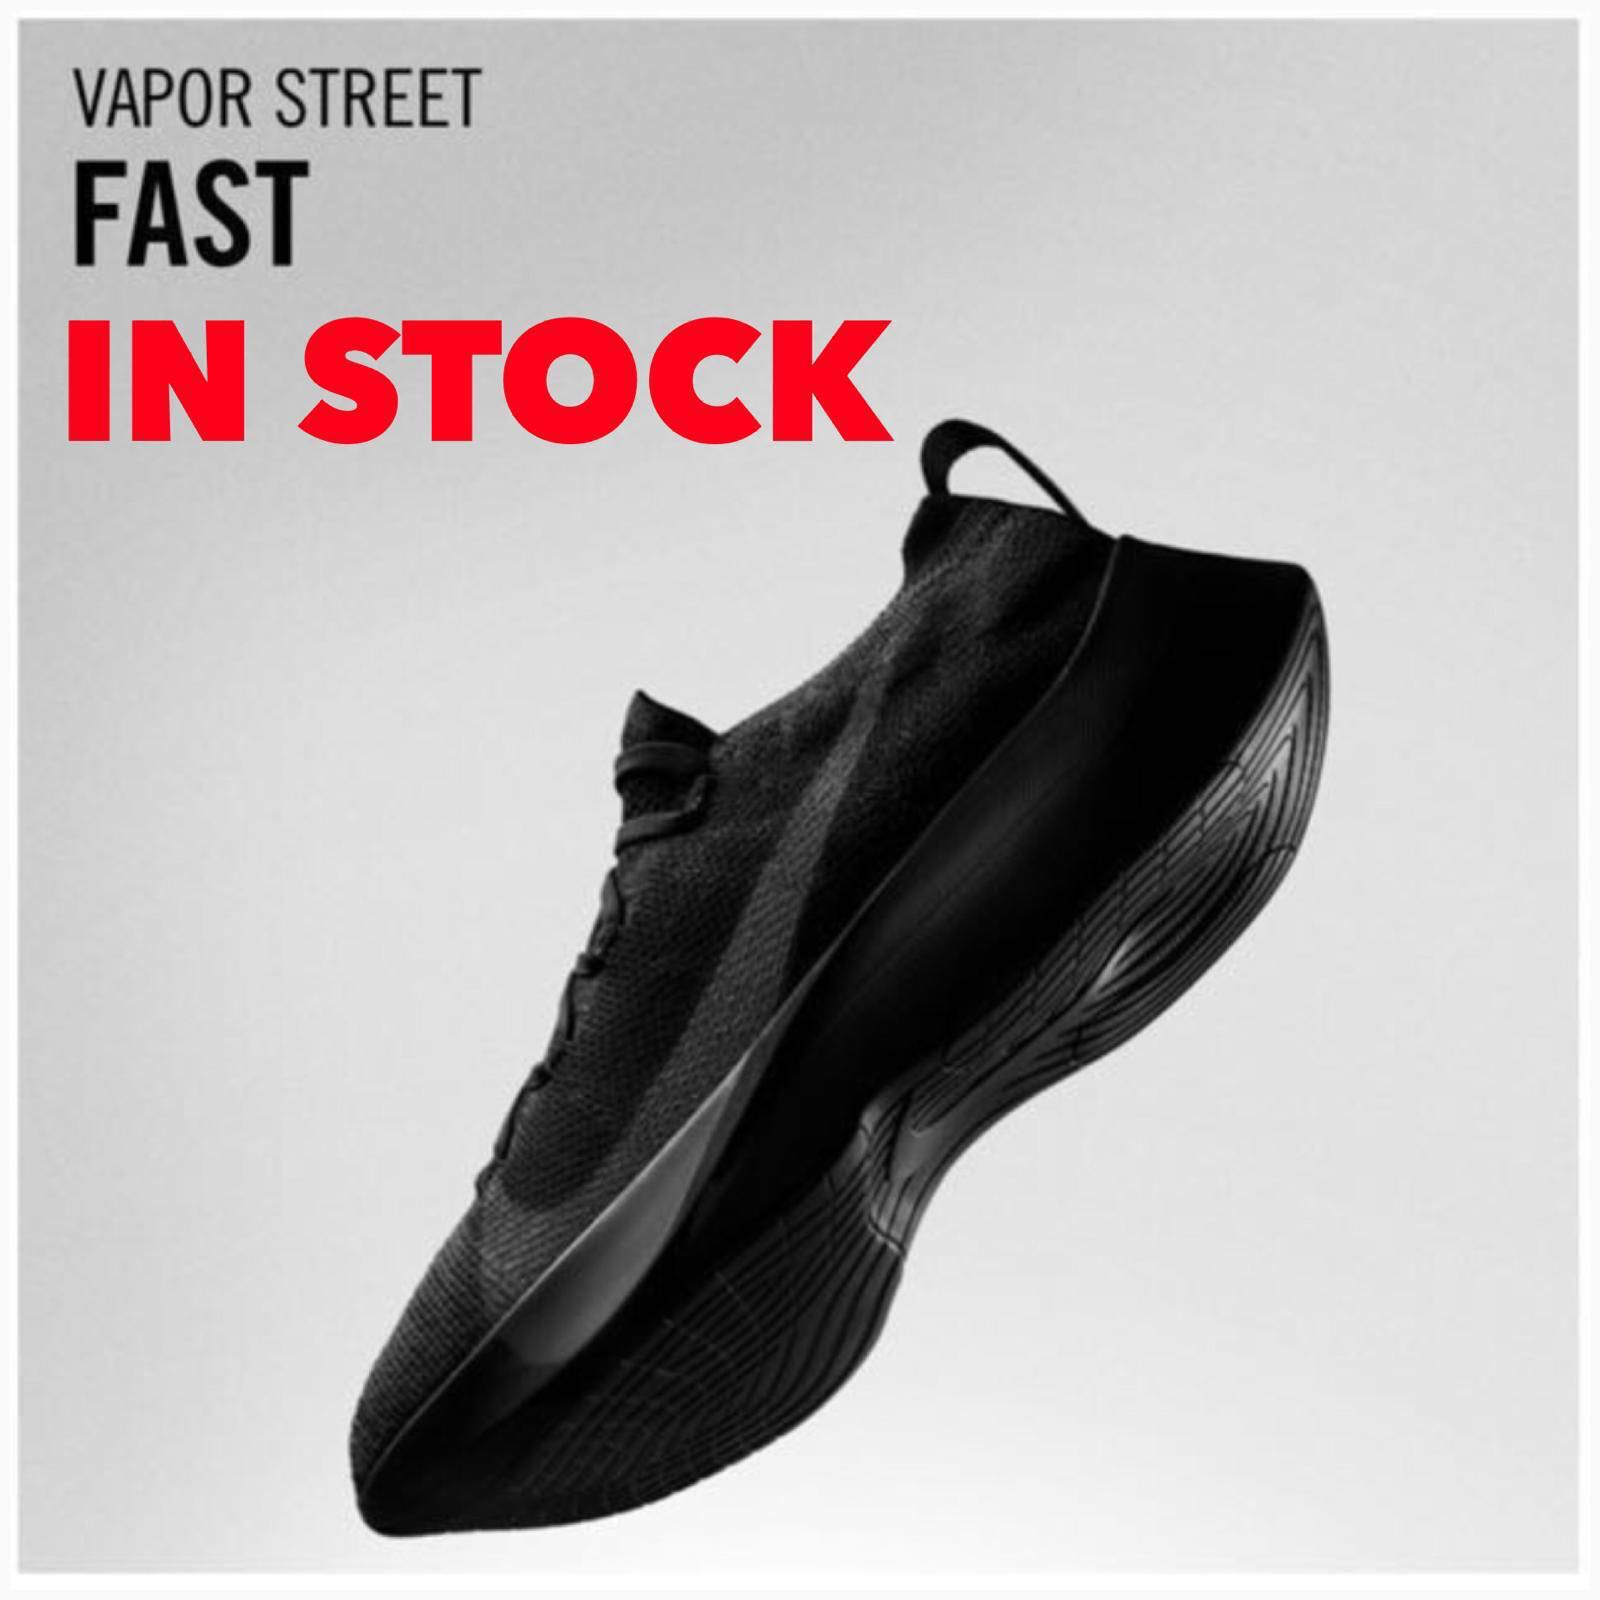 89b5bd4b In Stock Men's Nike Vapor Street Flyknit|BLACK|Updated Actual Photos ...